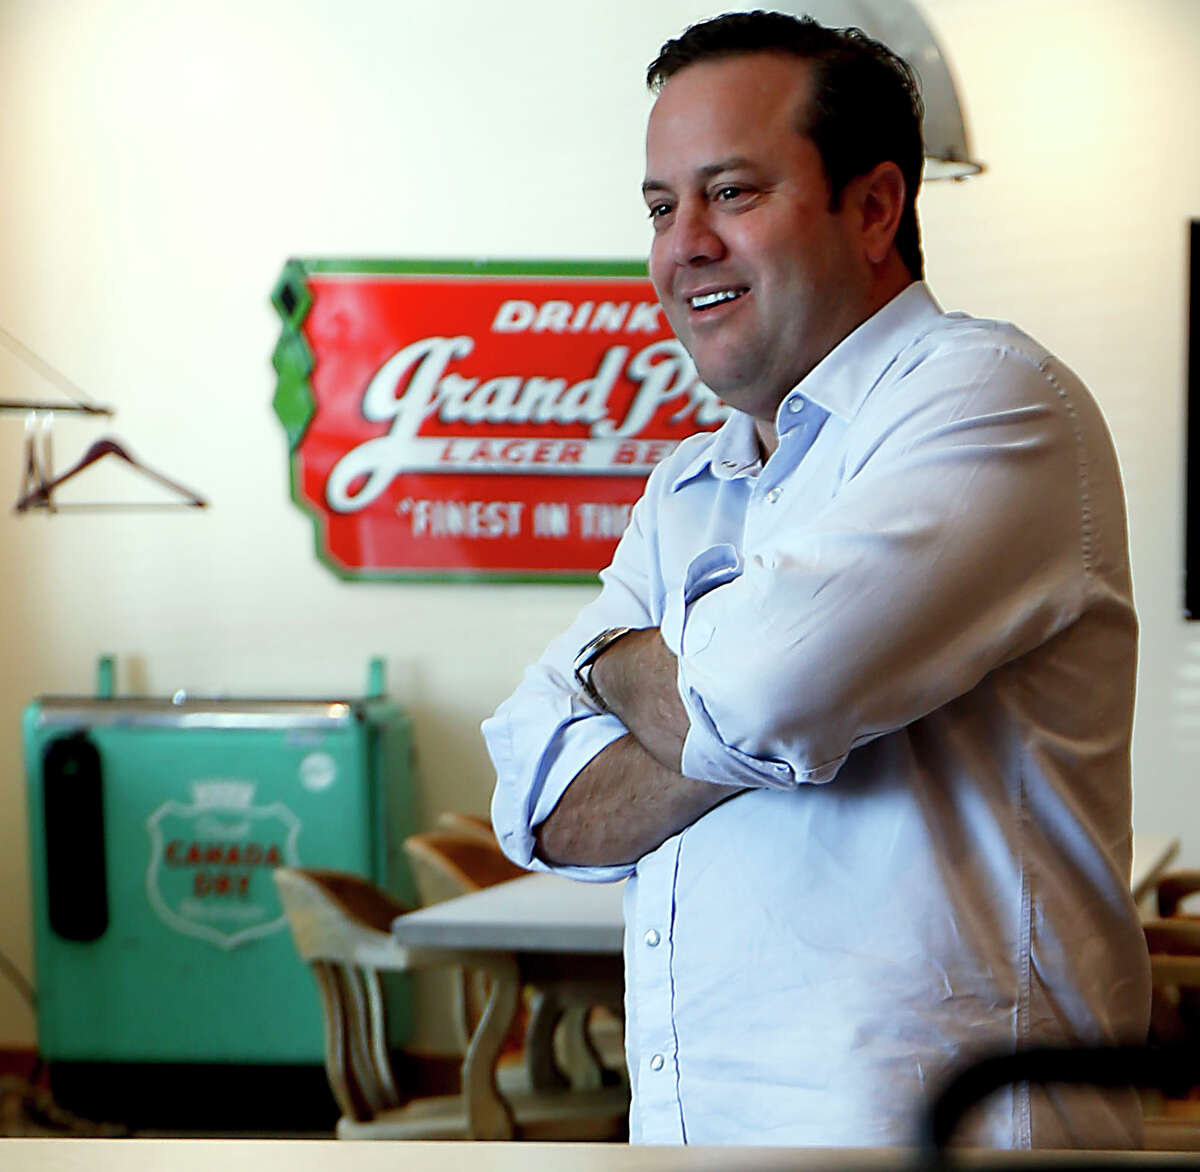 Goode Co. President Levi Goode in the company's test kitchen Wednesday, July 23, 2014, in Stafford. ( James Nielsen / Houston Chronicle )